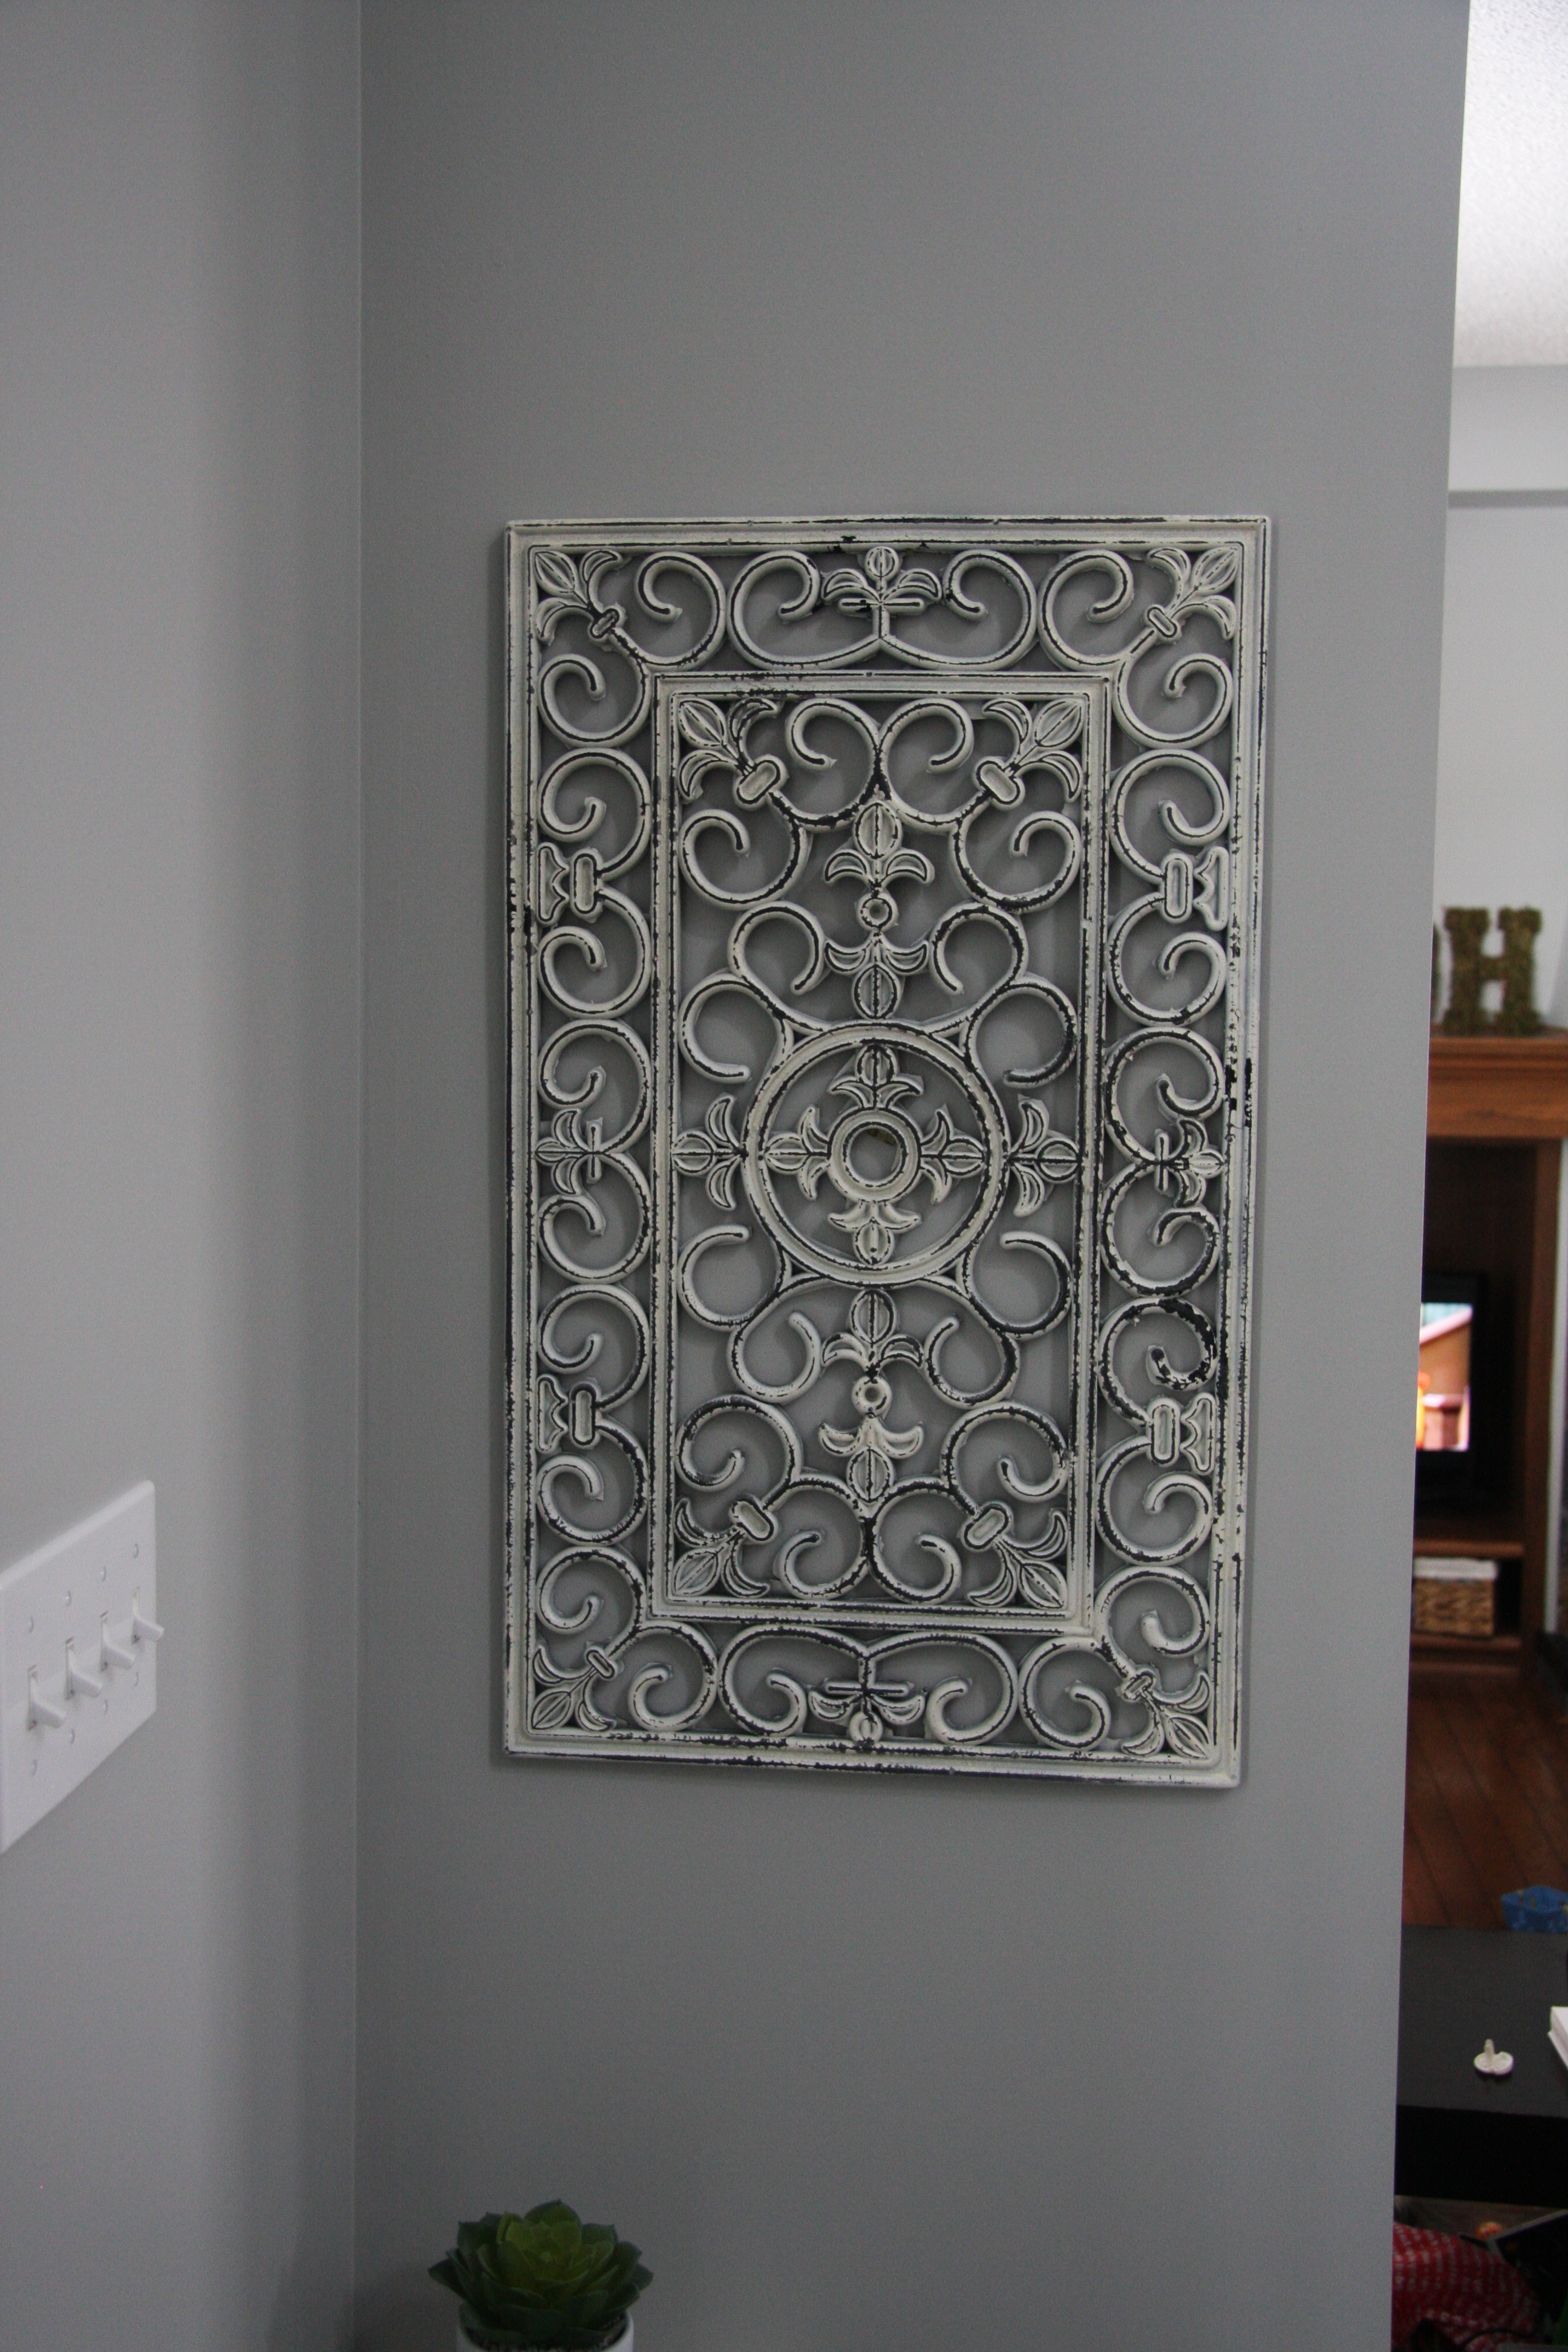 Newest Shabby Chic Wall Art – Lilybuttondesign Regarding Shabby Chic Wall Art (View 7 of 15)